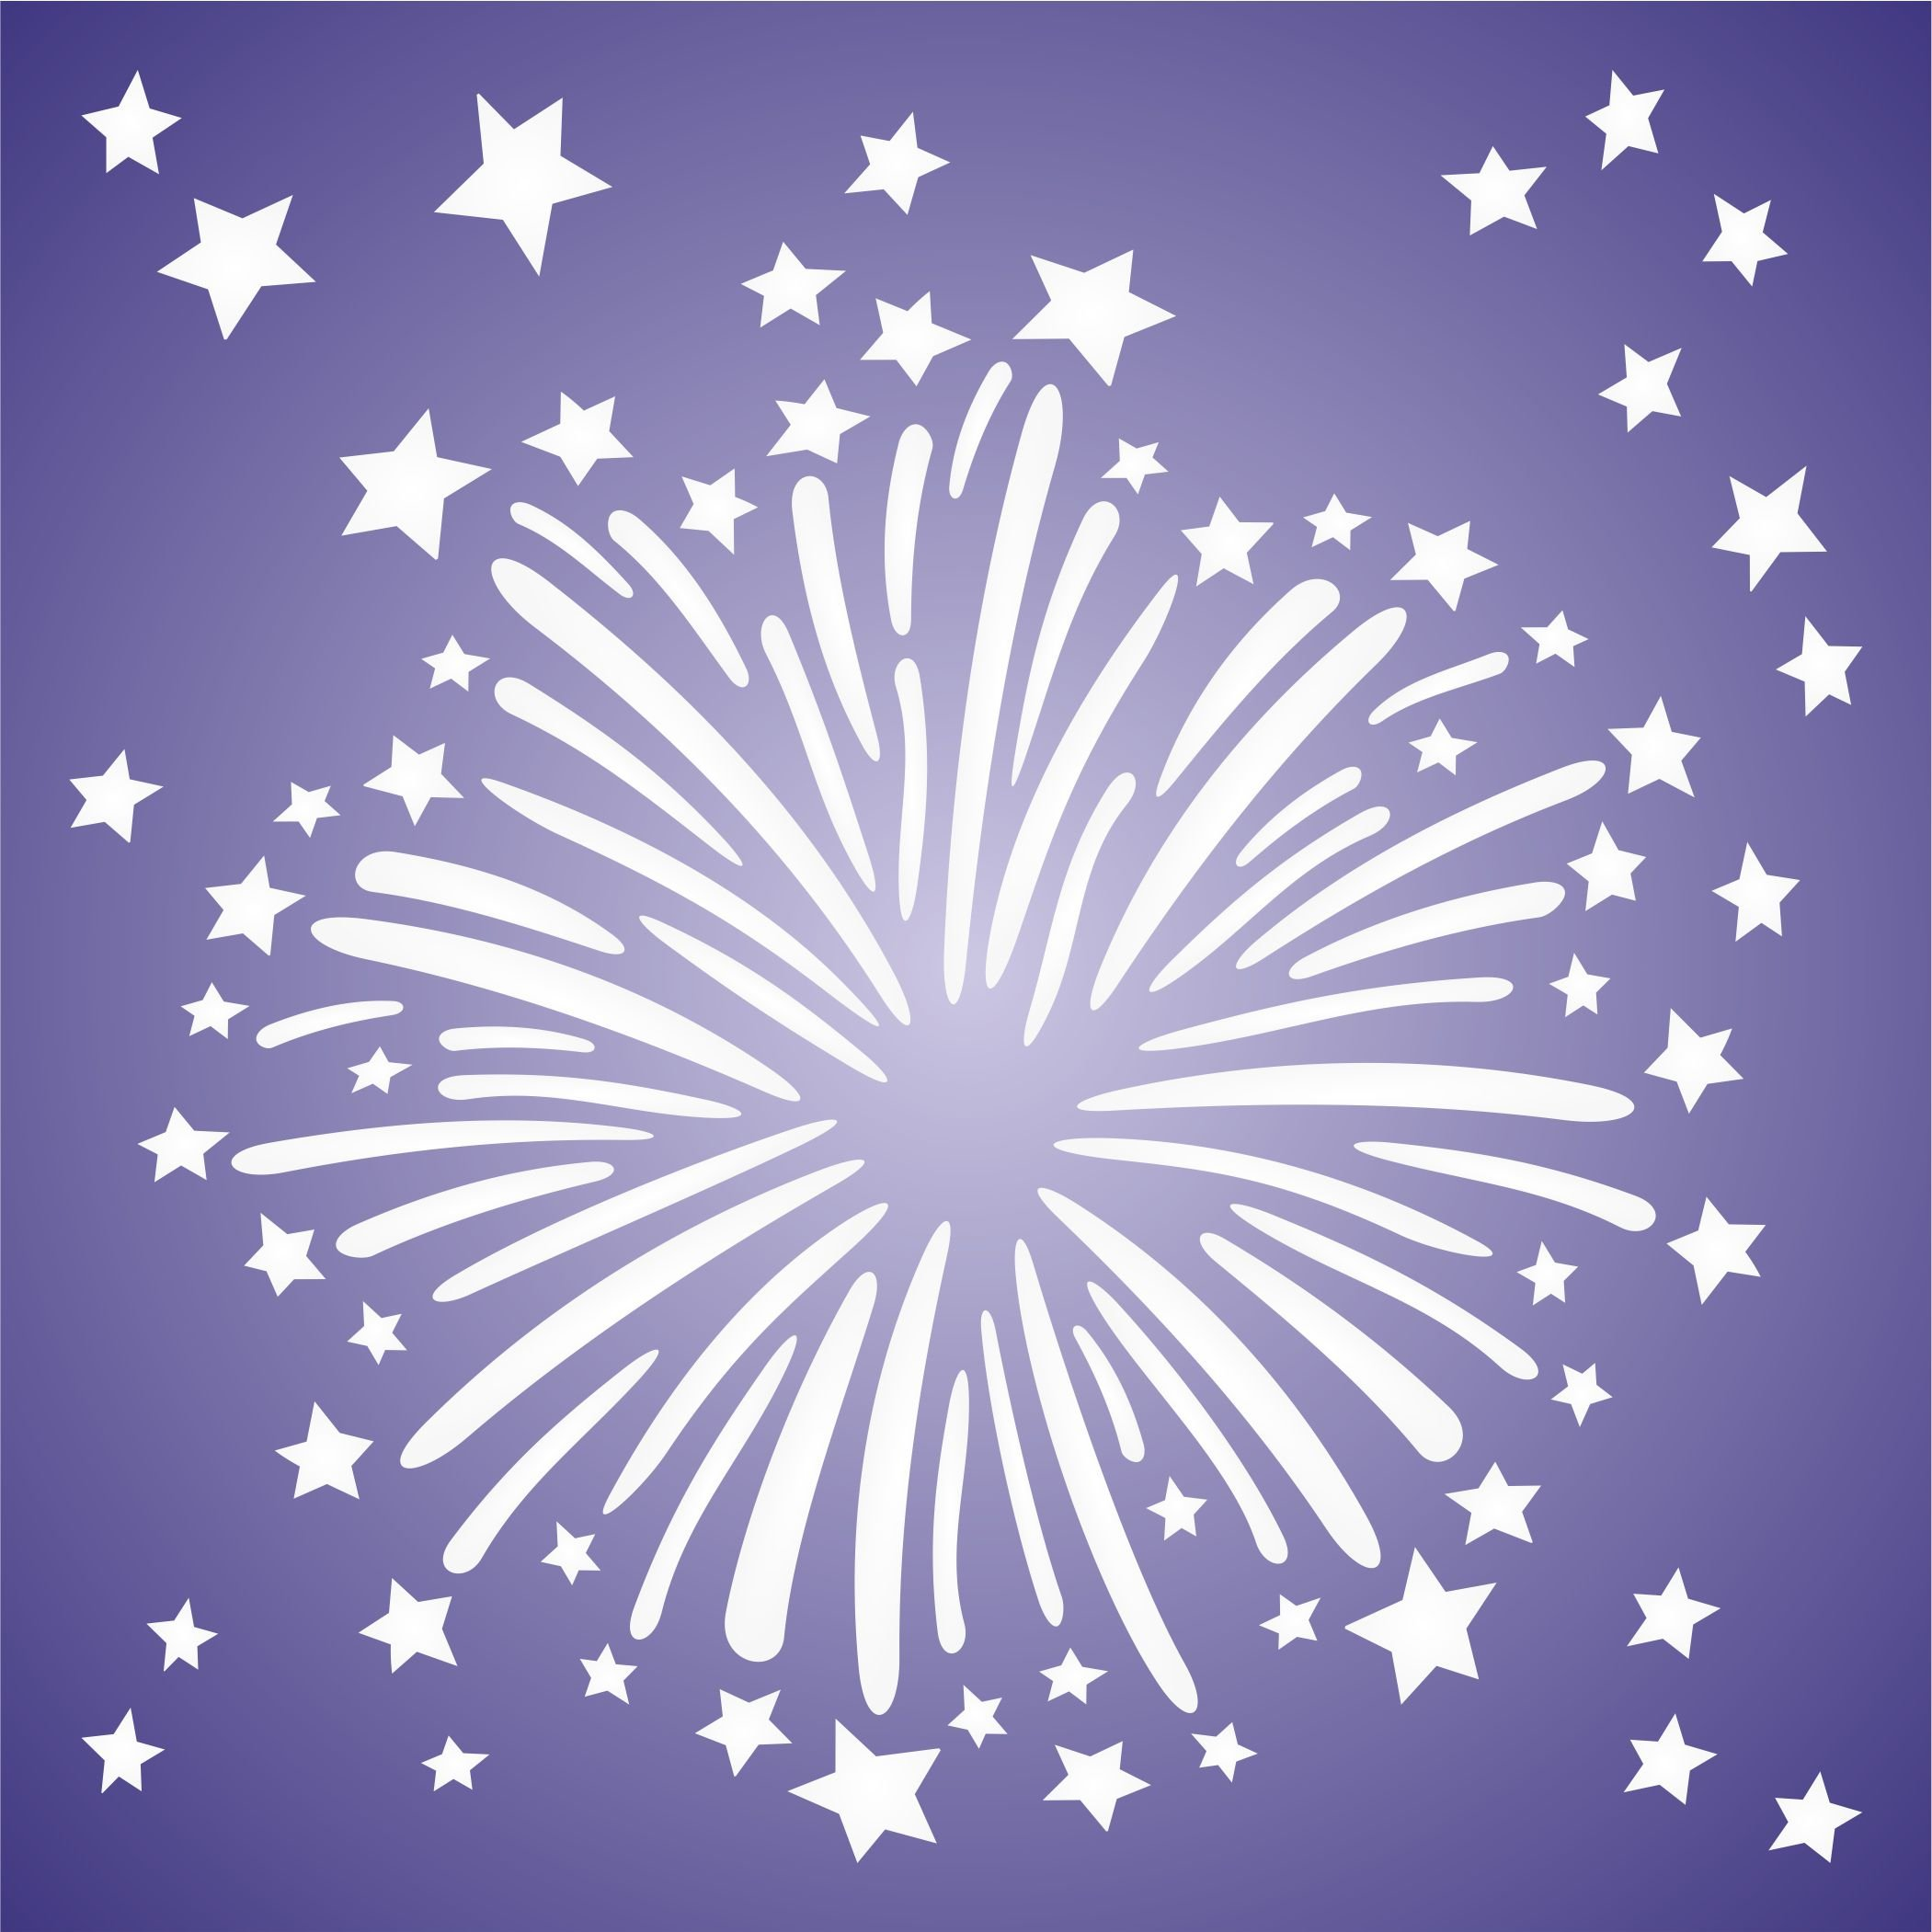 """FIREWORKS STENCIL (size 9""""w x 9""""h) Reusable Stencils for Painting - Best Quality Scrapbooking Wall Art Décor Ideas - Use on Walls, Floors, Fabrics, Glass, Wood, Posters, and More…"""